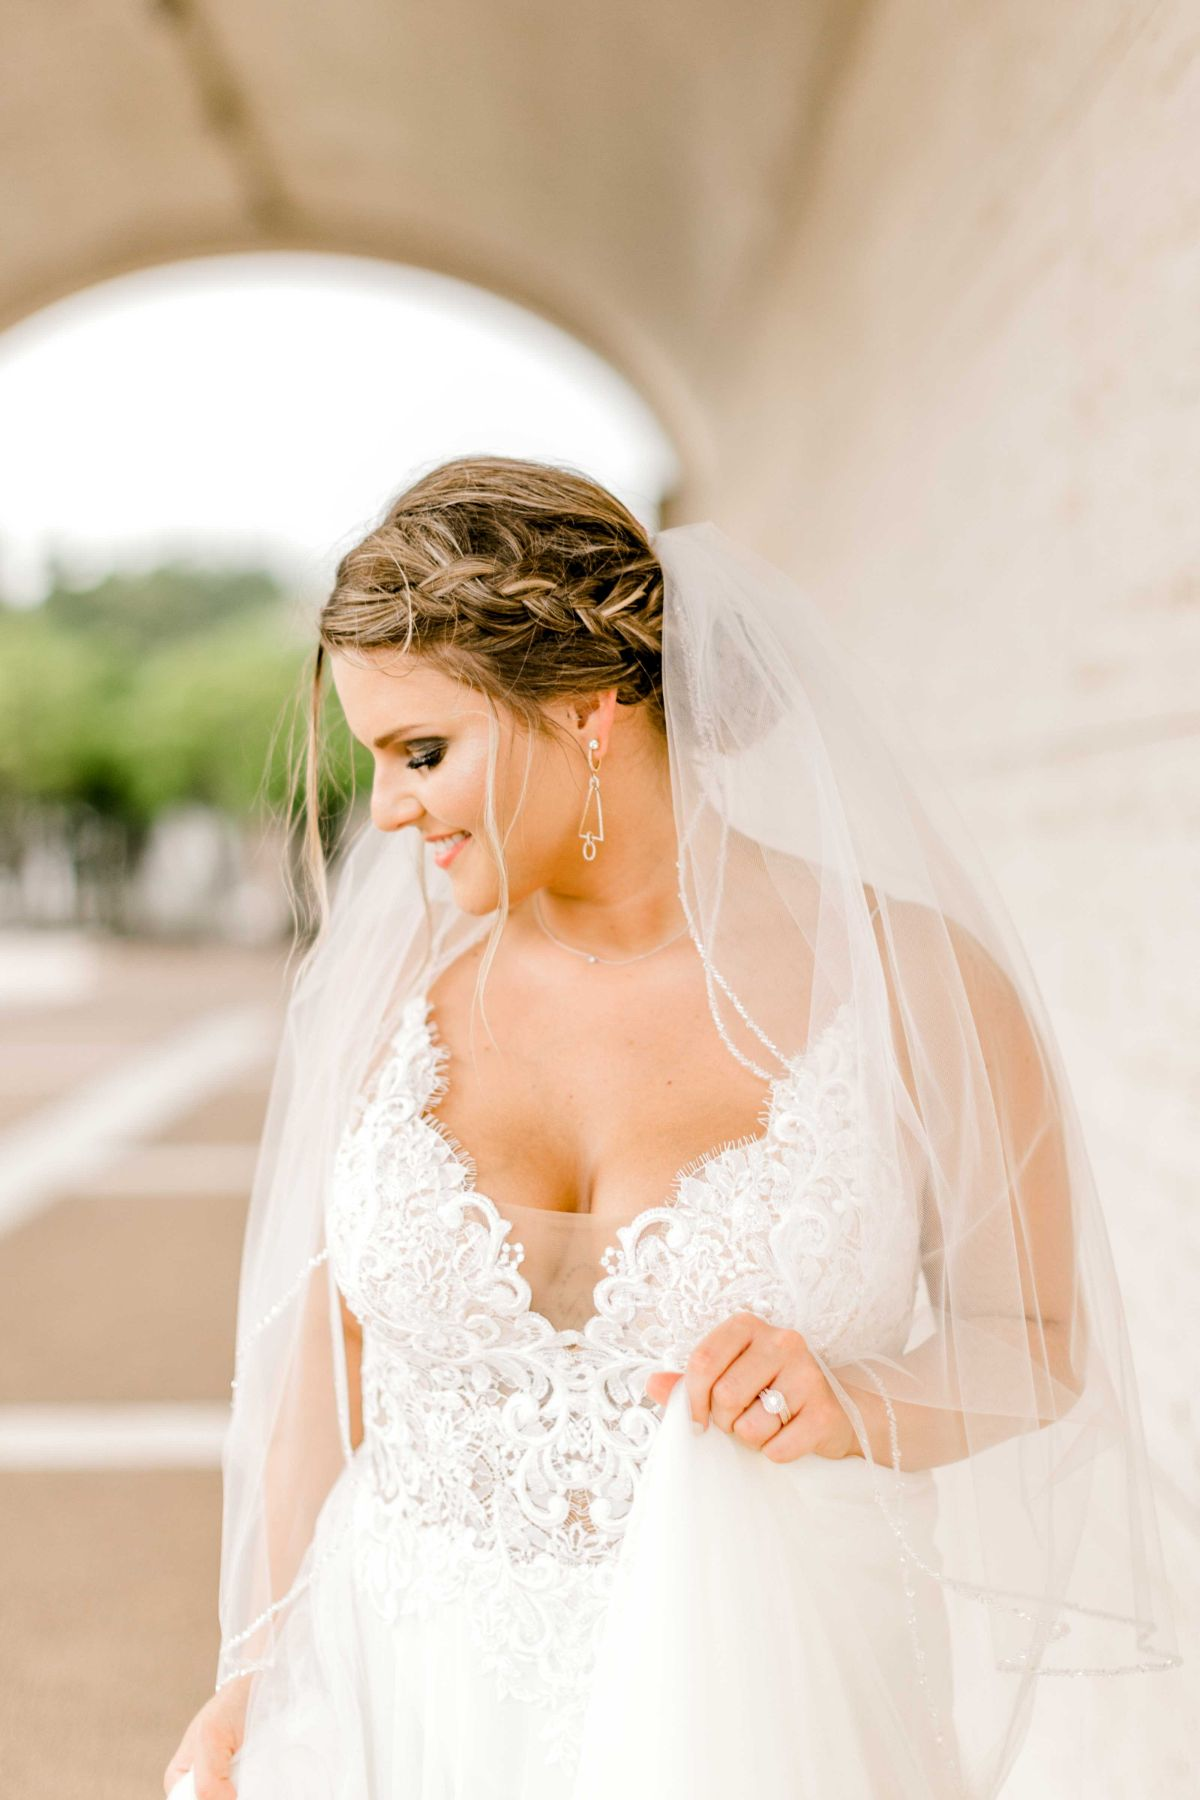 sarah-bridals-fort-worth-wedding-photographer-38.jpg